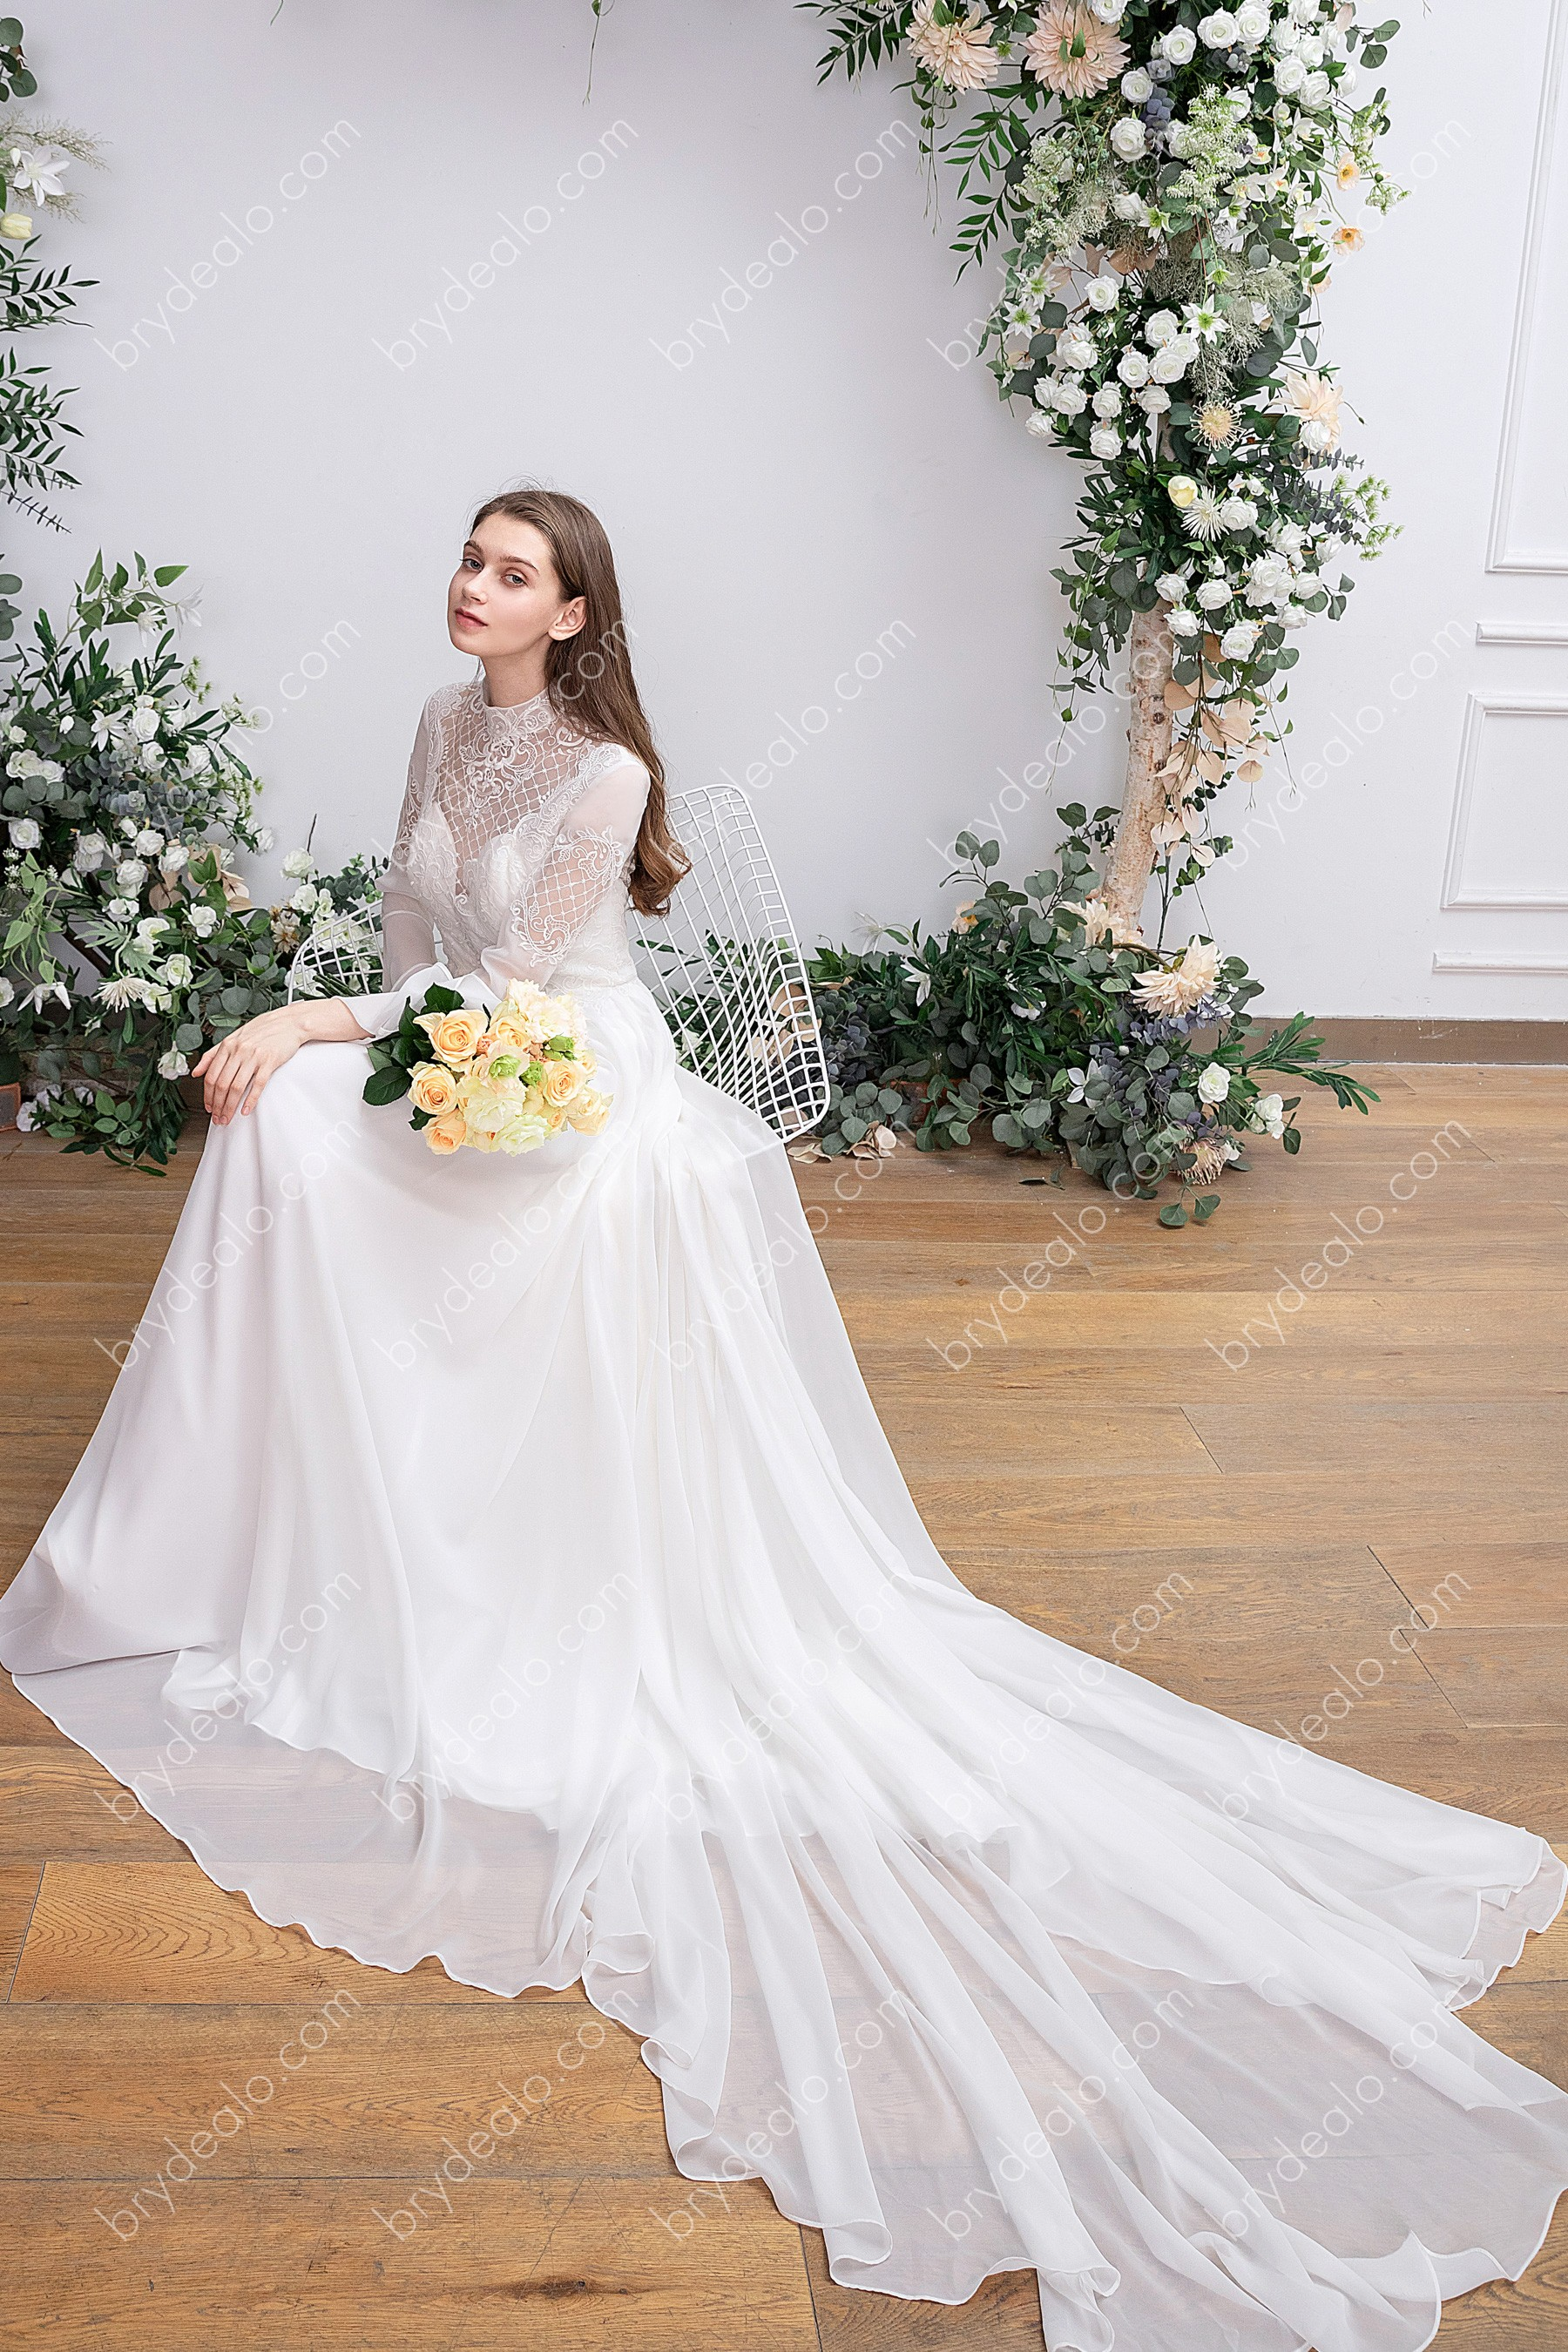 Long Bell Sleeve Flowy Boho Wedding Dress With High Neck